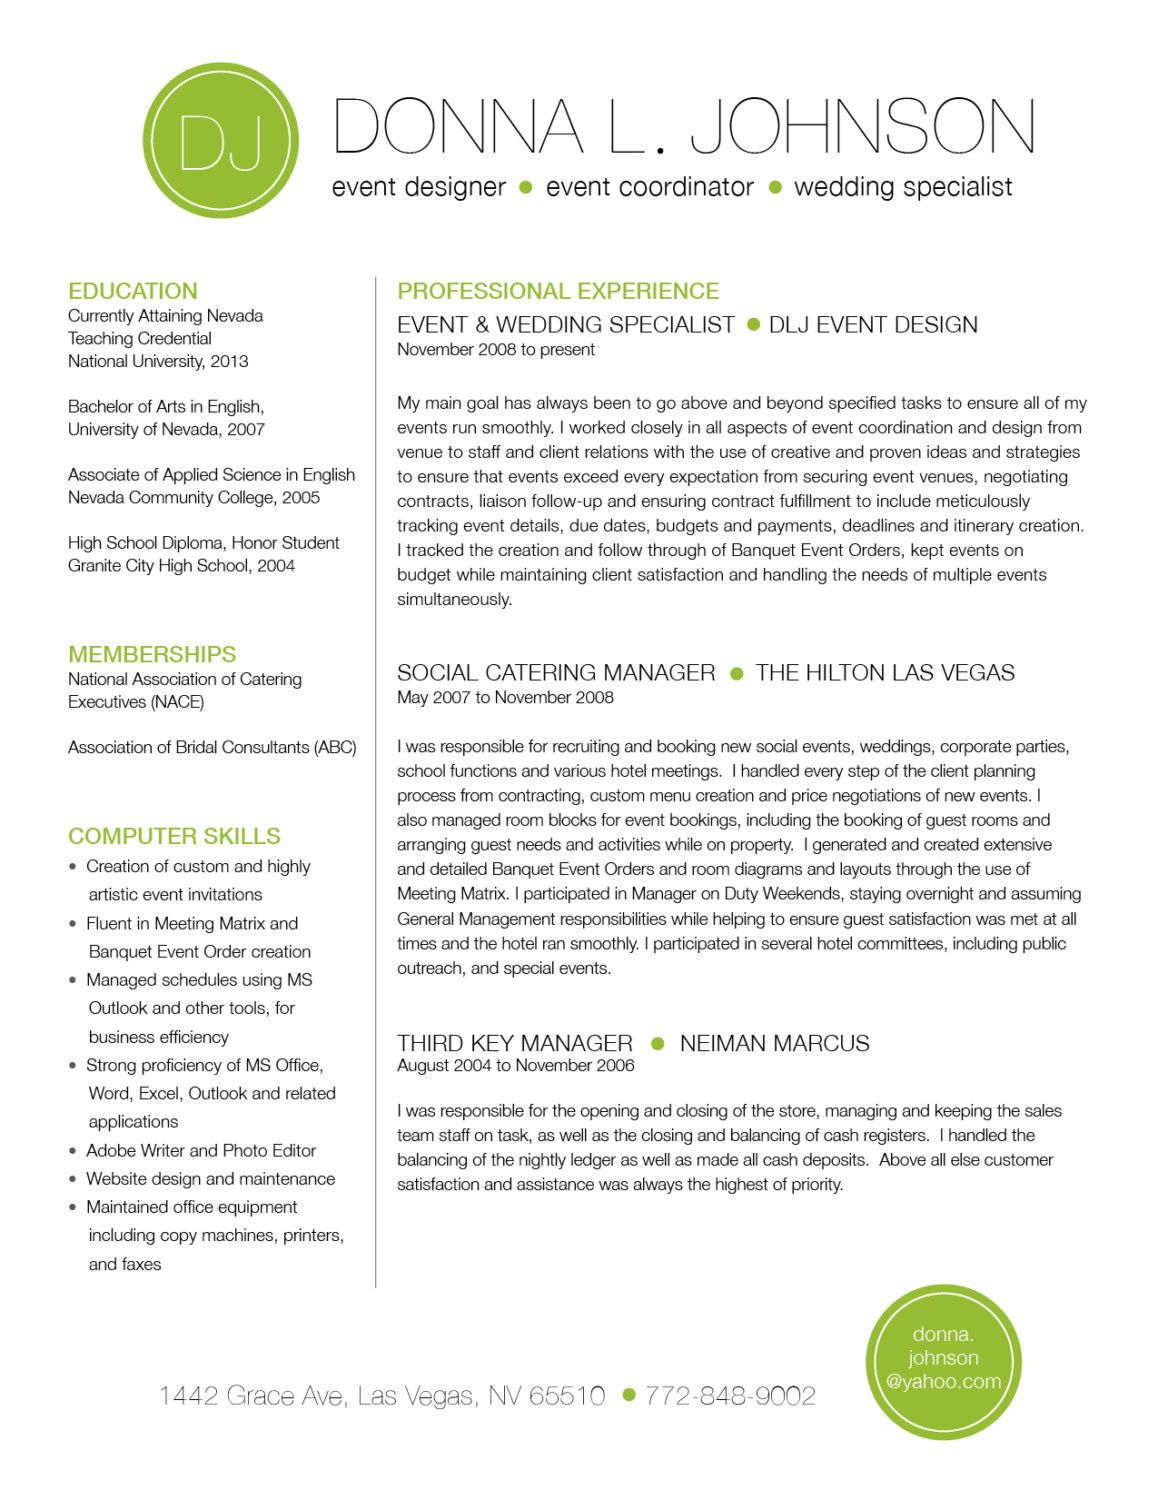 Custom two-page resume template - Color circle initials